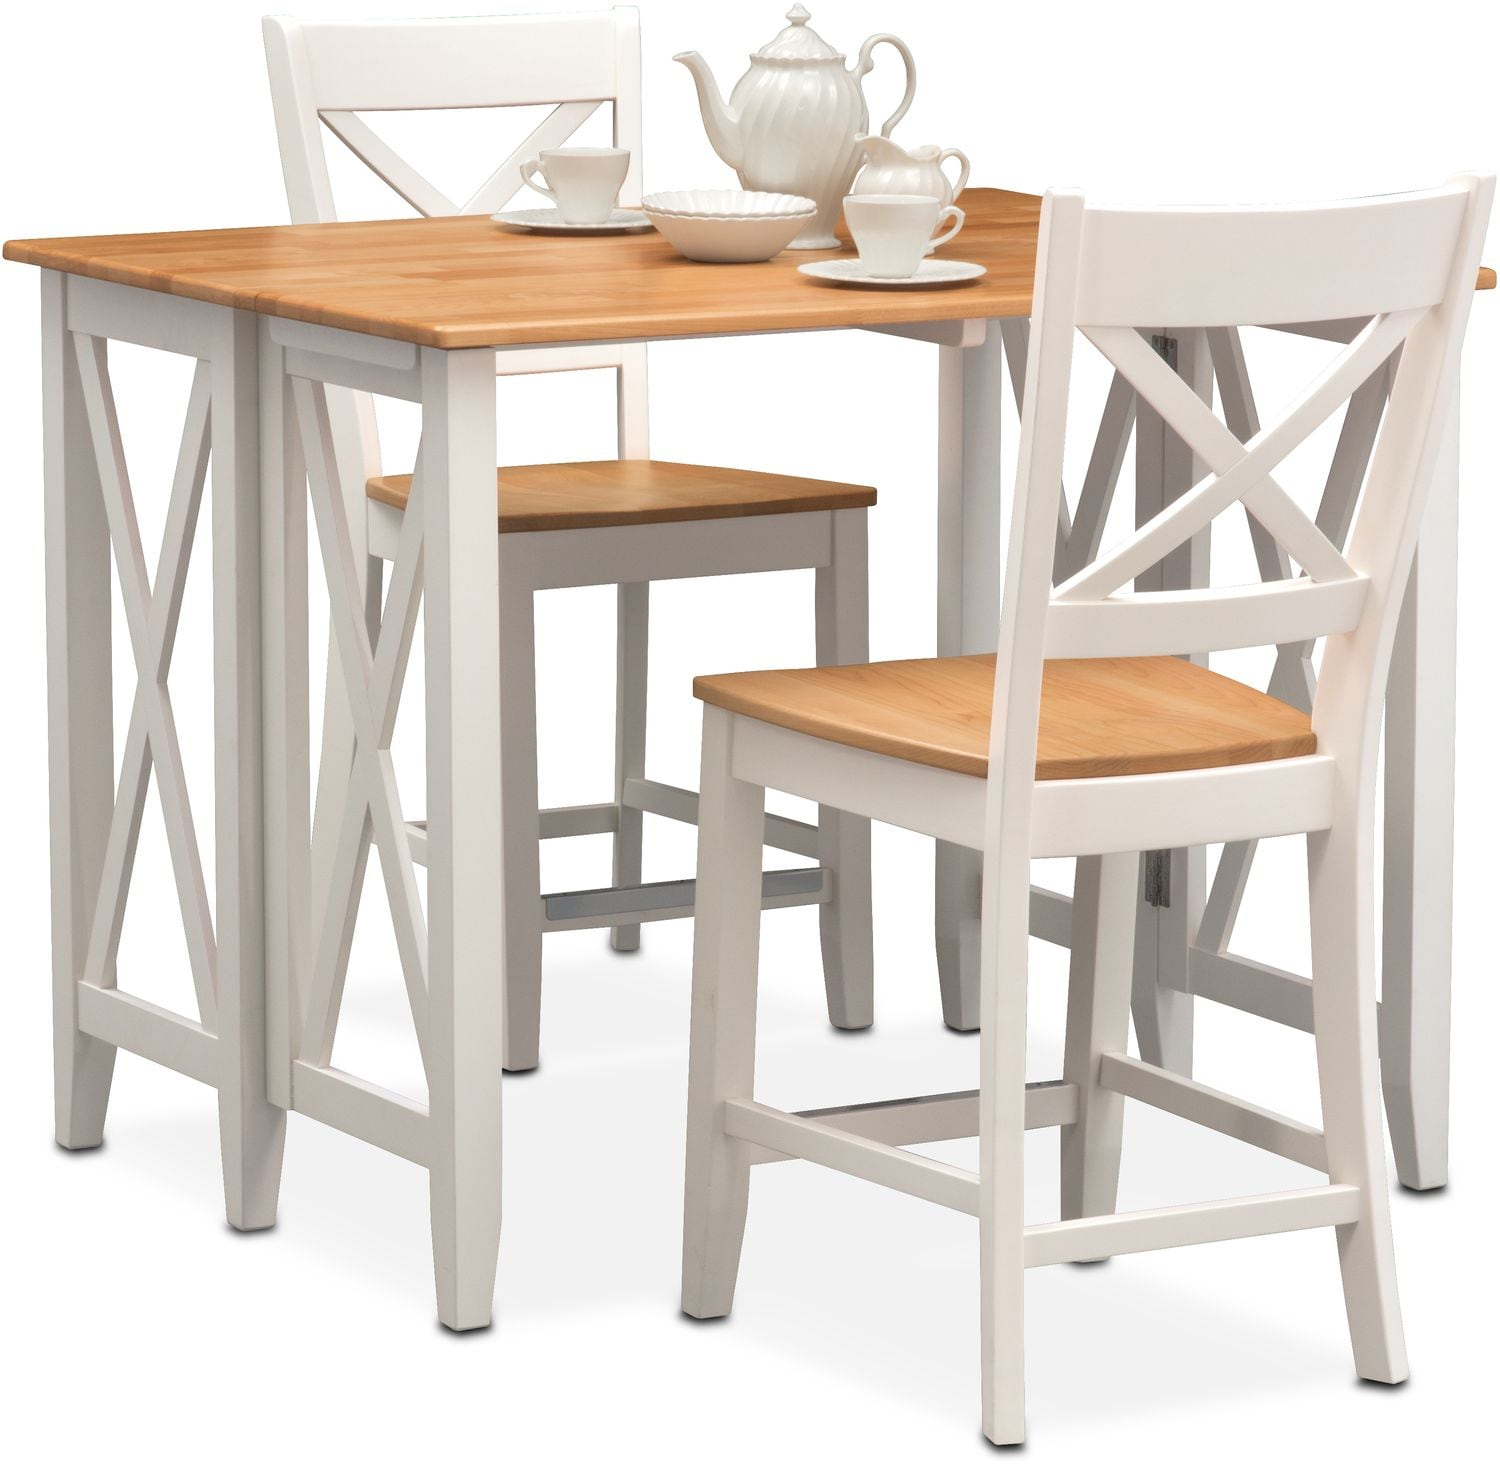 Breakfast Chairs Nantucket Breakfast Bar And 2 Counter Height Side Chairs